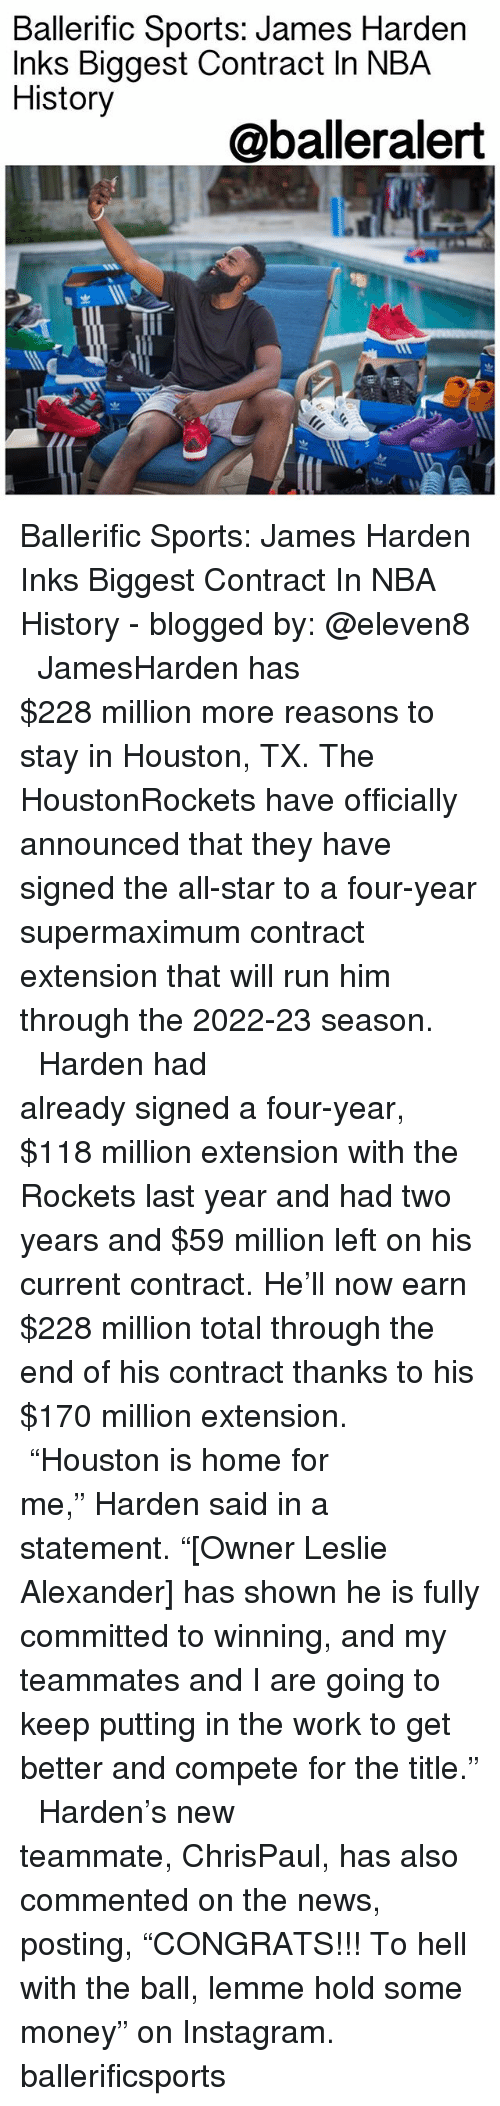 "All Star, Instagram, and James Harden: Ballerific Sports: James Harden  Inks Biggest Contract In NBA  History  @balleralert  渹ㄓ Ballerific Sports: James Harden Inks Biggest Contract In NBA History - blogged by: @eleven8 ⠀⠀⠀⠀⠀⠀⠀⠀⠀ ⠀⠀⠀⠀⠀⠀⠀⠀⠀ JamesHarden has $228 million more reasons to stay in Houston, TX. The HoustonRockets have officially announced that they have signed the all-star to a four-year supermaximum contract extension that will run him through the 2022-23 season. ⠀⠀⠀⠀⠀⠀⠀⠀⠀ ⠀⠀⠀⠀⠀⠀⠀⠀⠀ Harden had already signed a four-year, $118 million extension with the Rockets last year and had two years and $59 million left on his current contract. He'll now earn $228 million total through the end of his contract thanks to his $170 million extension. ⠀⠀⠀⠀⠀⠀⠀⠀⠀ ⠀⠀⠀⠀⠀⠀⠀⠀⠀ ""Houston is home for me,"" Harden said in a statement. ""[Owner Leslie Alexander] has shown he is fully committed to winning, and my teammates and I are going to keep putting in the work to get better and compete for the title."" ⠀⠀⠀⠀⠀⠀⠀⠀⠀ ⠀⠀⠀⠀⠀⠀⠀⠀⠀ Harden's new teammate, ChrisPaul, has also commented on the news, posting, ""CONGRATS!!! To hell with the ball, lemme hold some money"" on Instagram. ballerificsports"